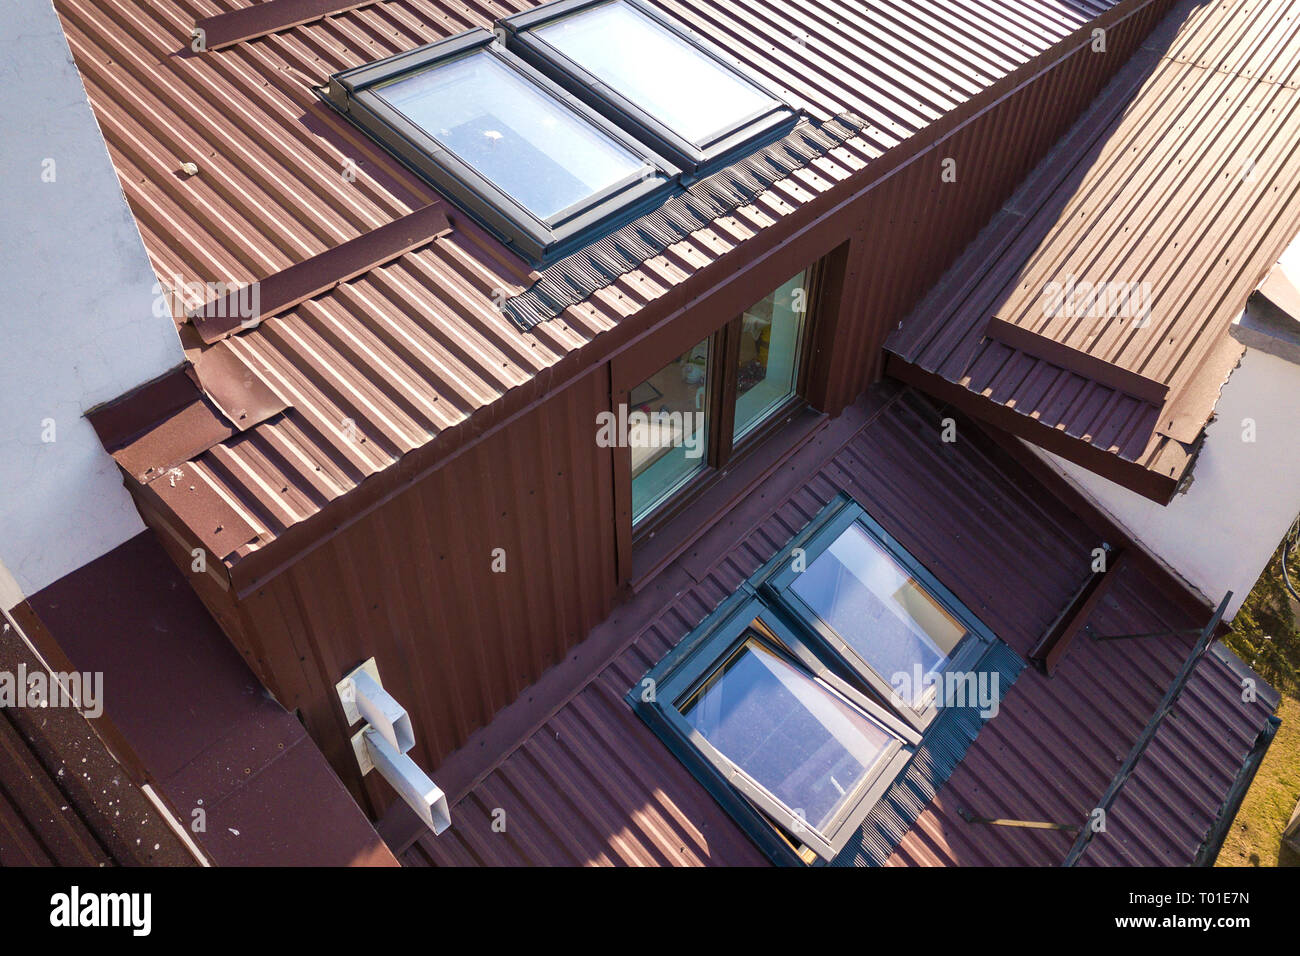 Aerial View Of Annex Room Exterior With Plastic Attic Windows Roof And Walls Covered With Brown Metal Decorative Siding Planks Stock Photo Alamy